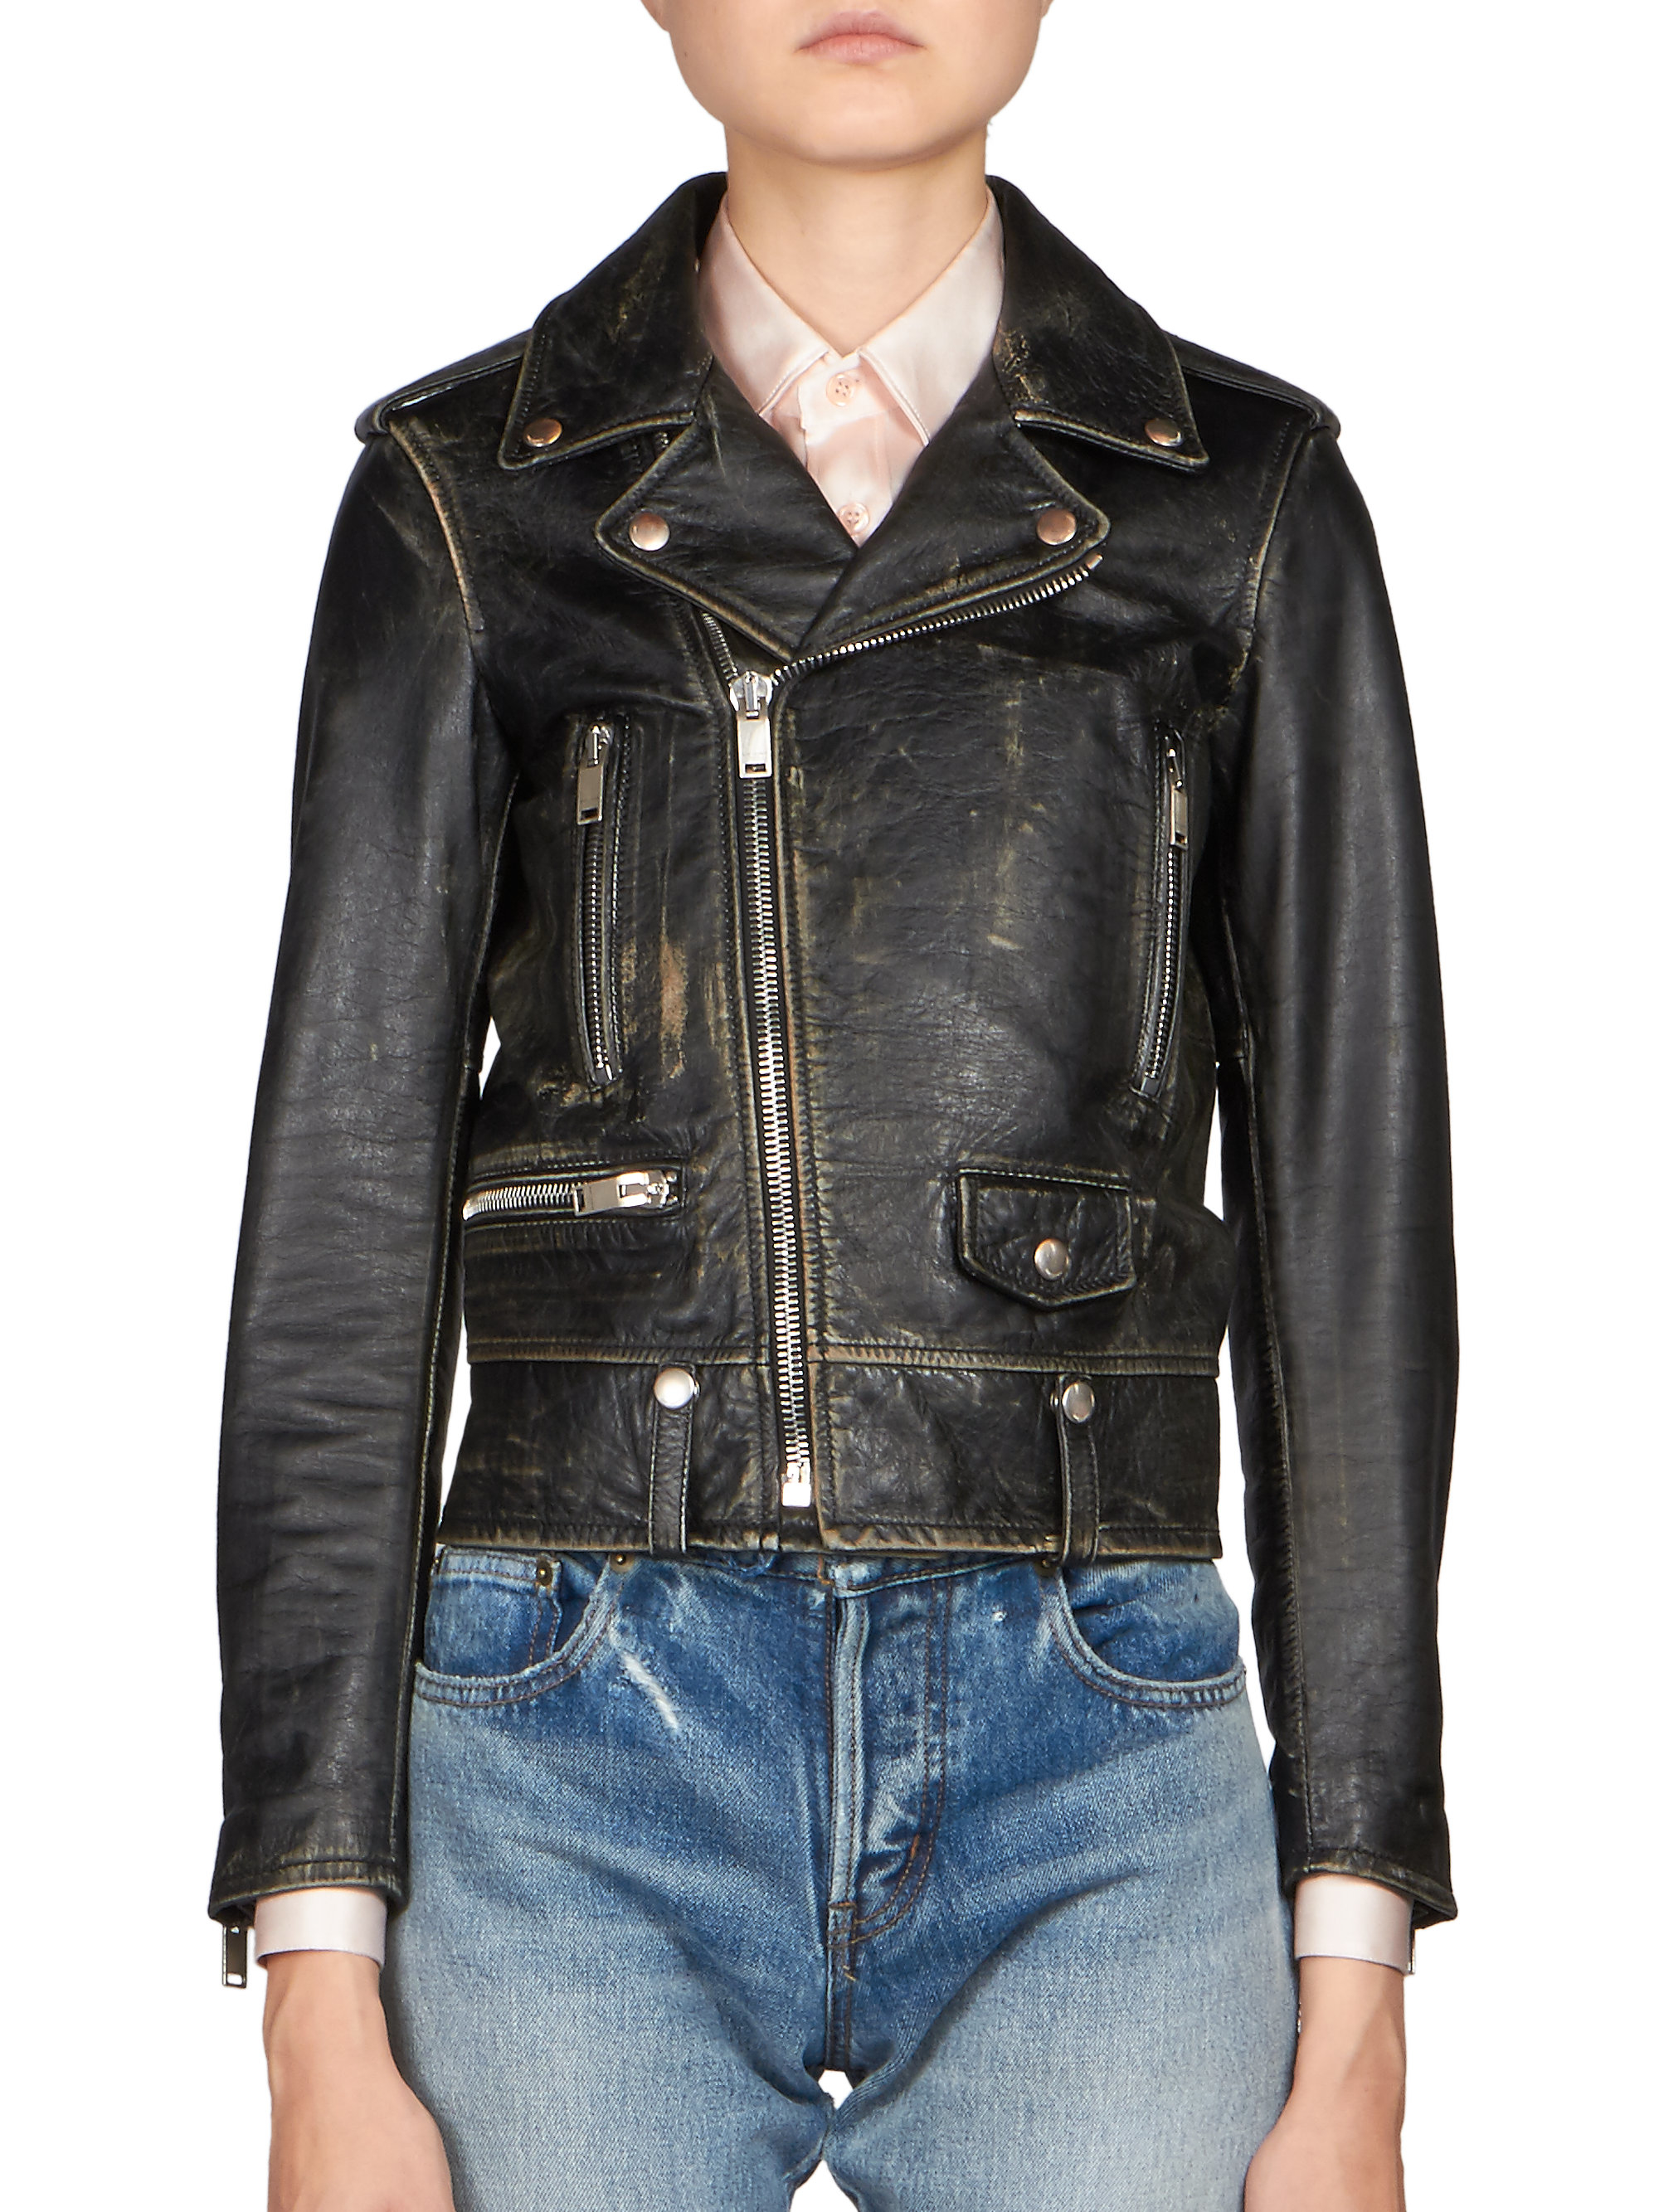 5566056608b Saint Laurent Distressed Leather Biker Jacket in Black - Lyst